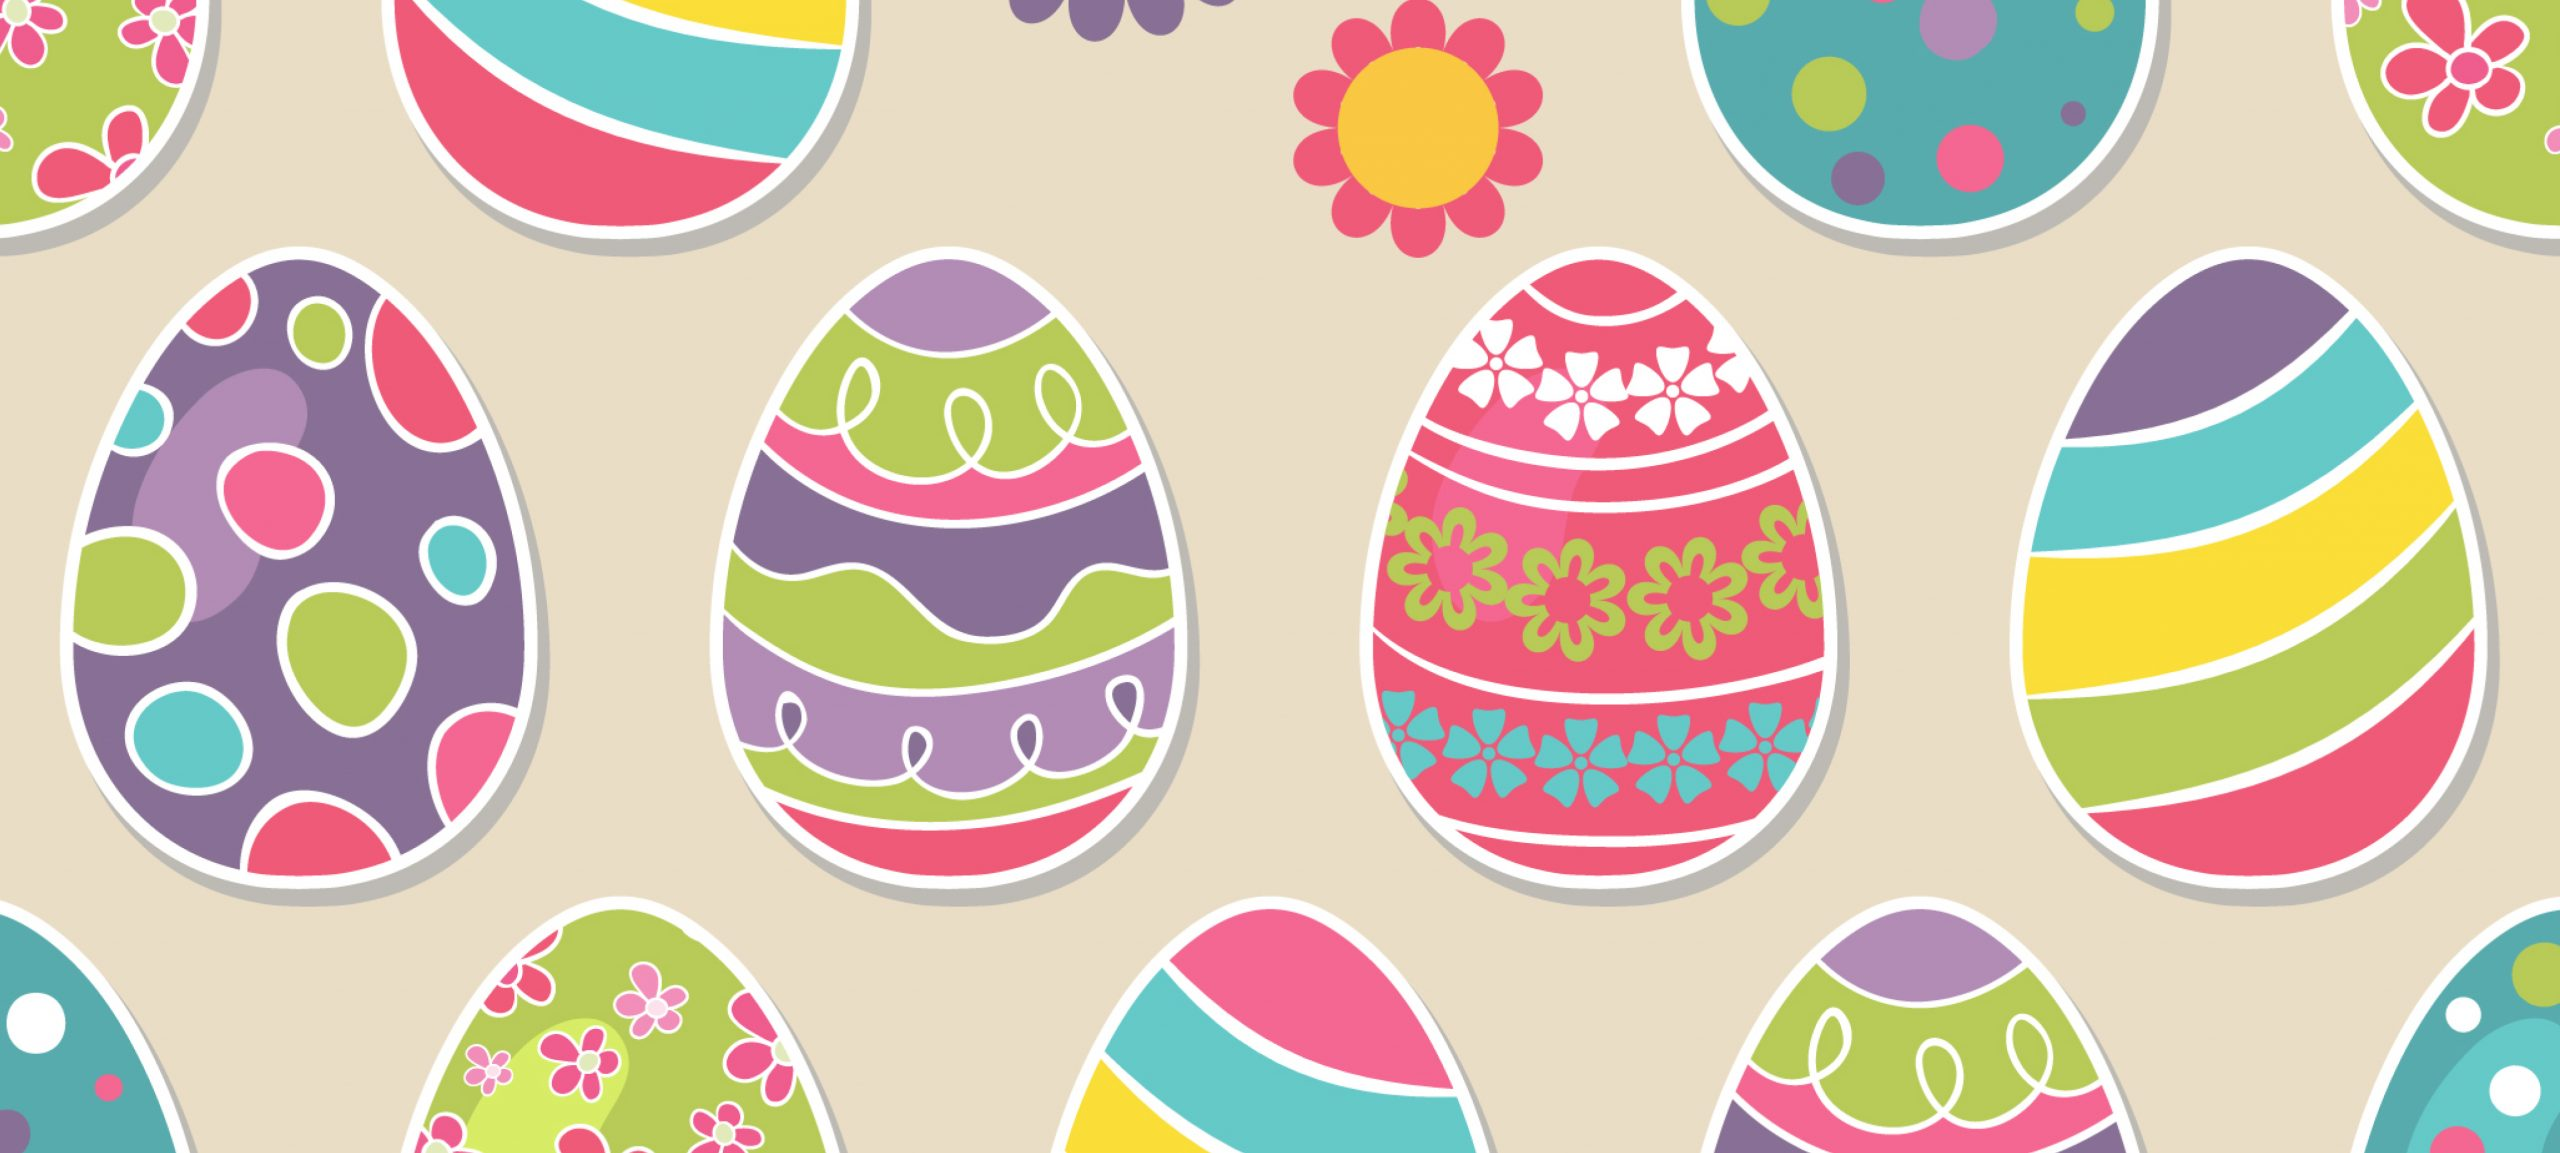 Design an Easter Egg Competition